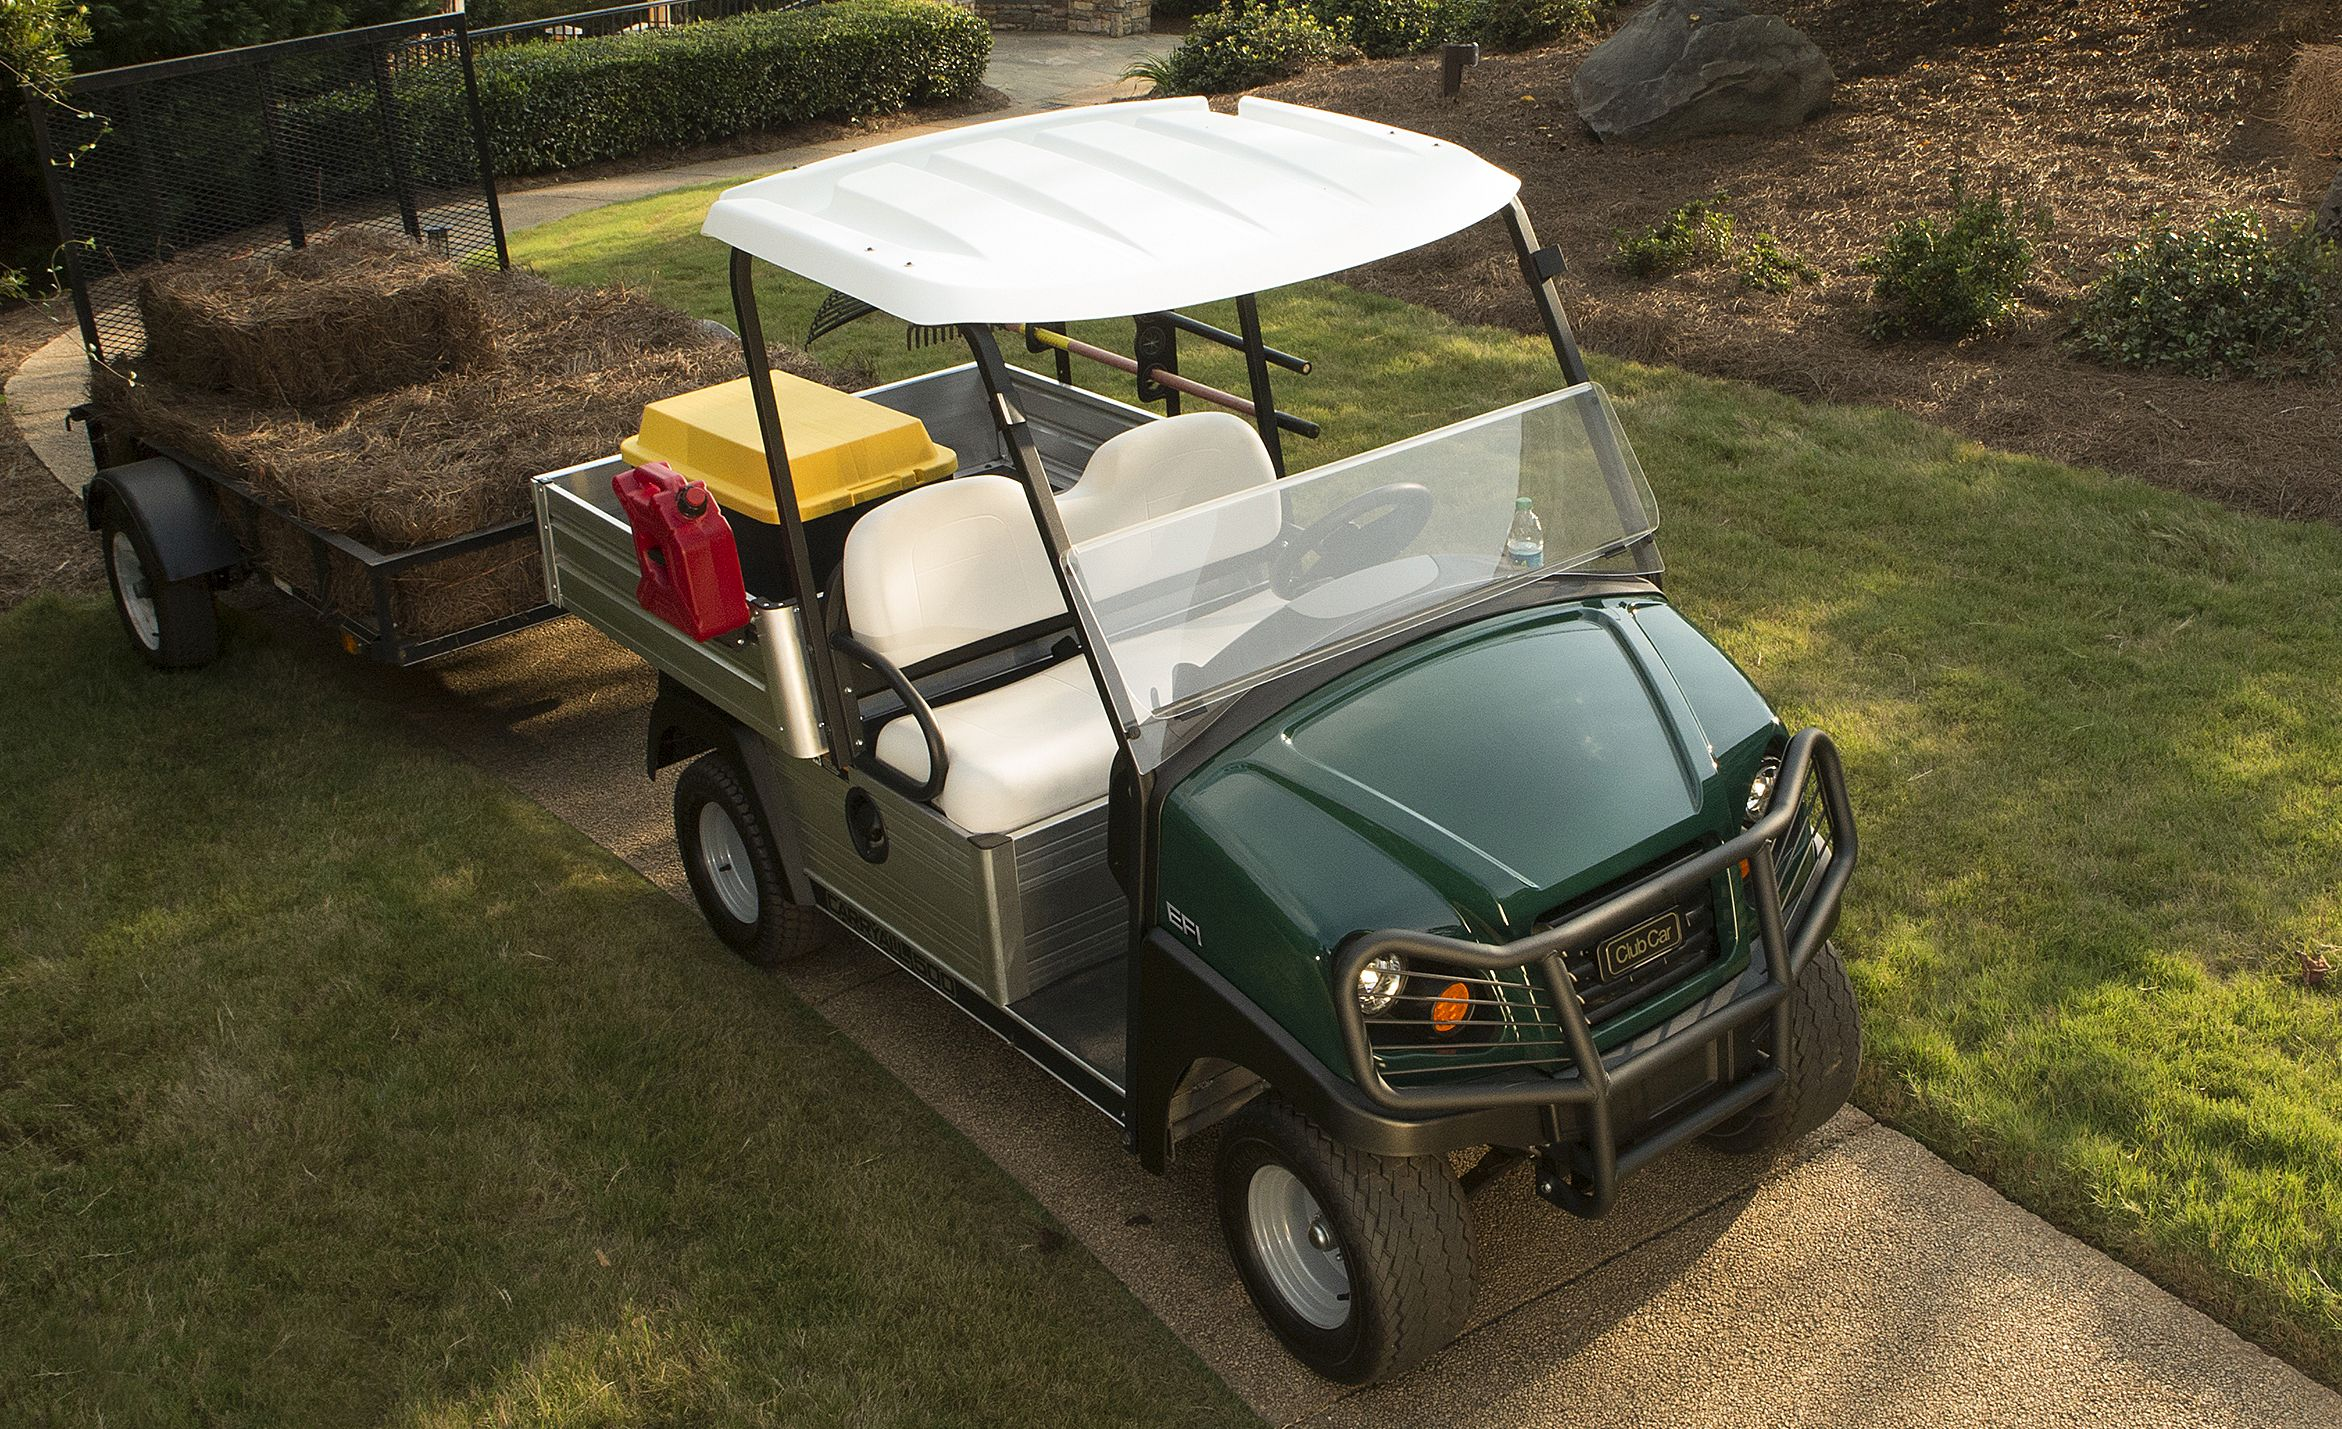 The Utility Vehicle Buyer's Checklist